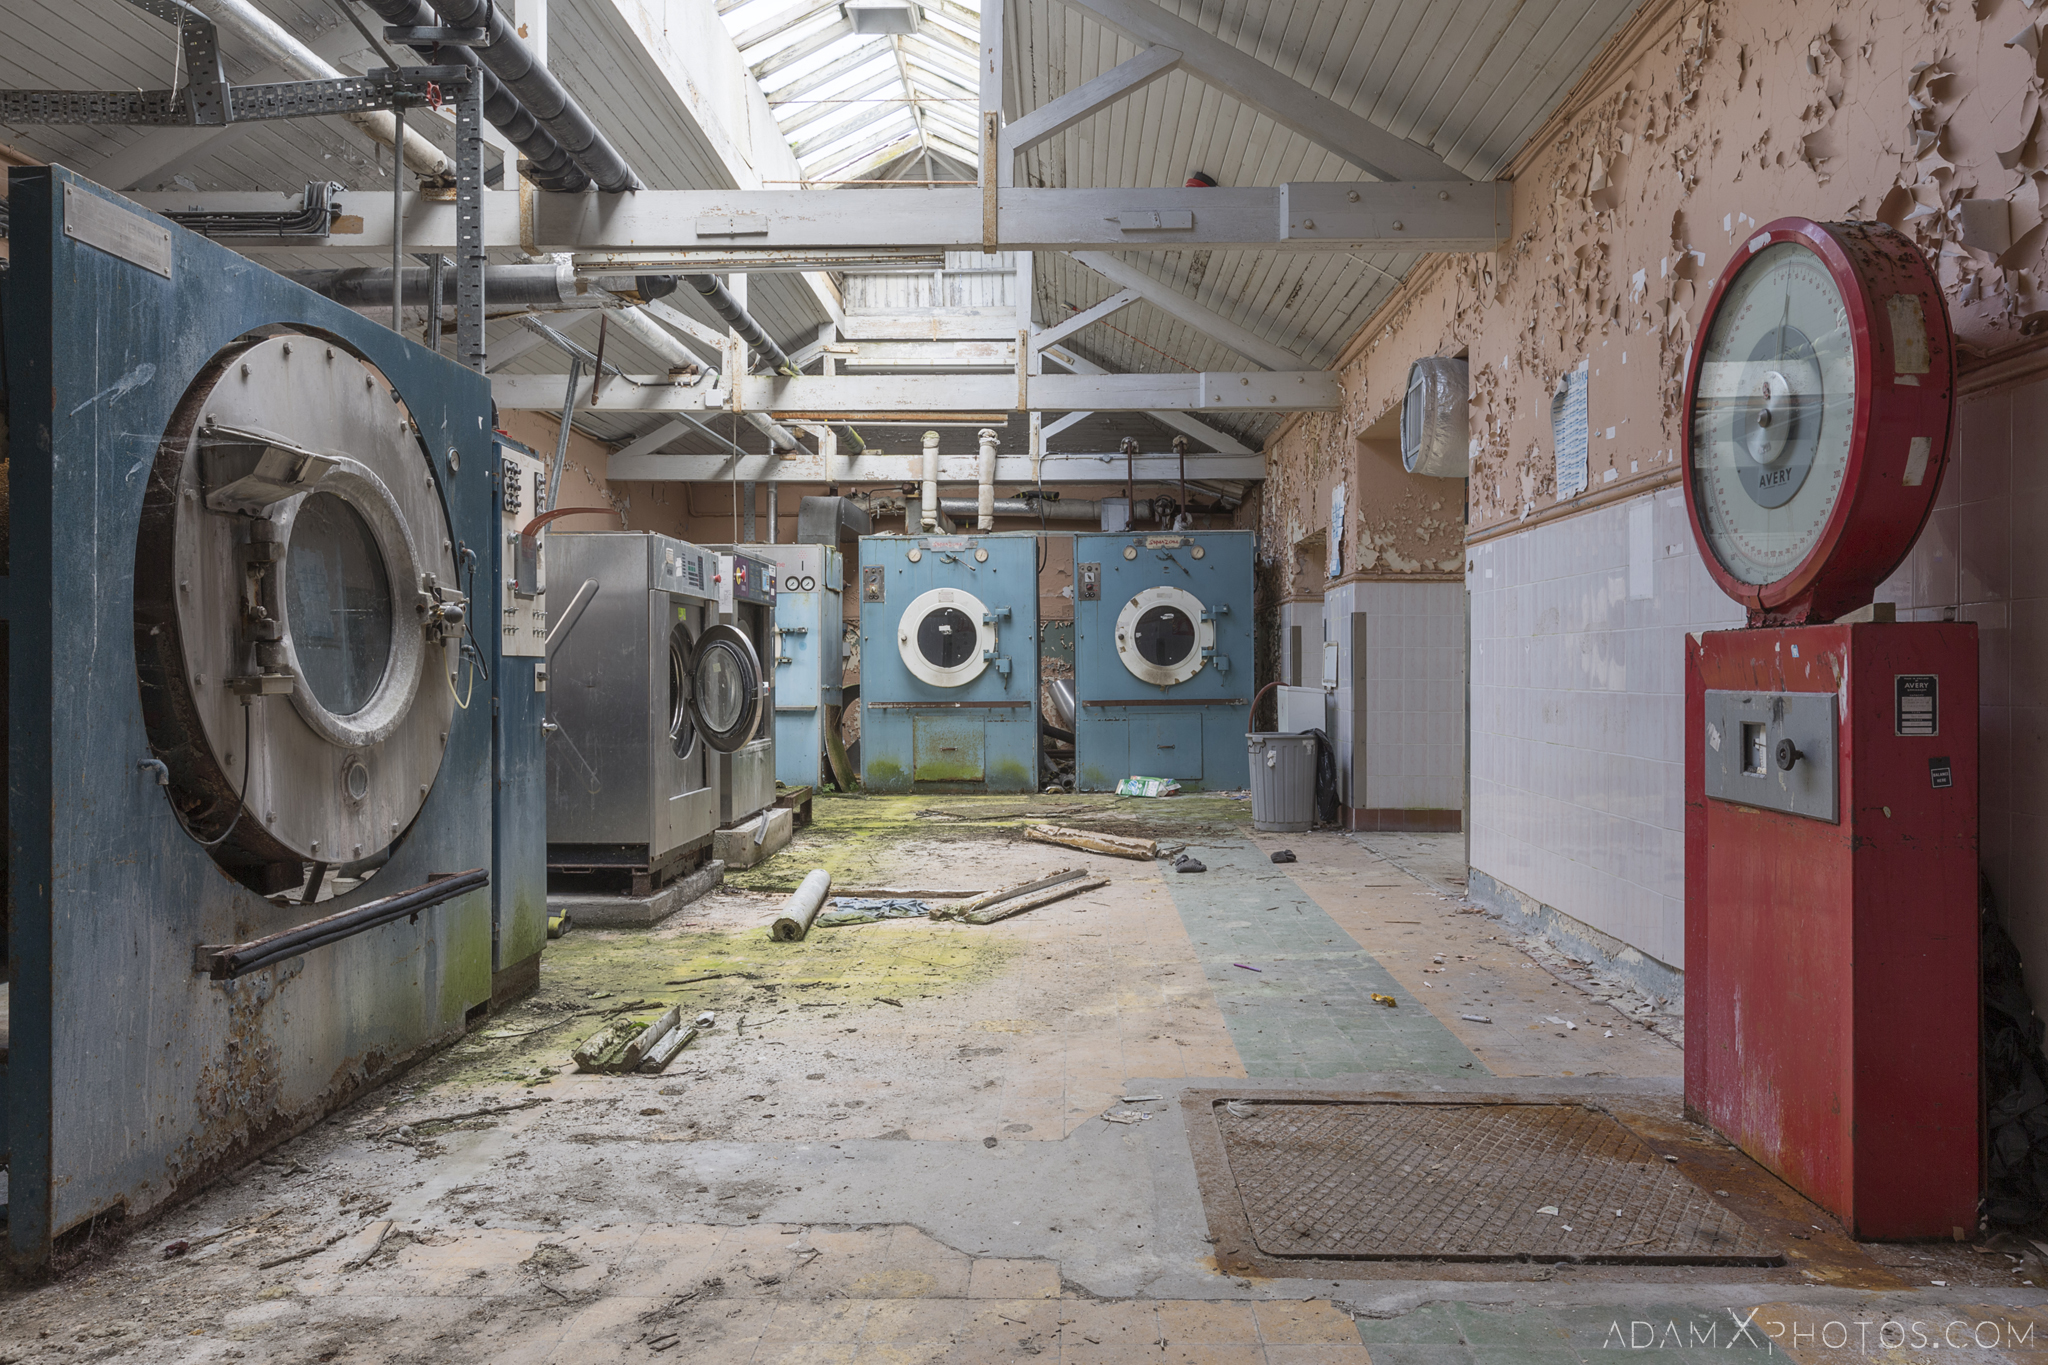 washing machines laundry scale Connacht District Lunatic Asylum St Brigid's Hospital Adam X Urbex Urban Exploration Ireland Ballinasloe Access 2017 Abandoned decay lost forgotten derelict location creepy haunting eerie